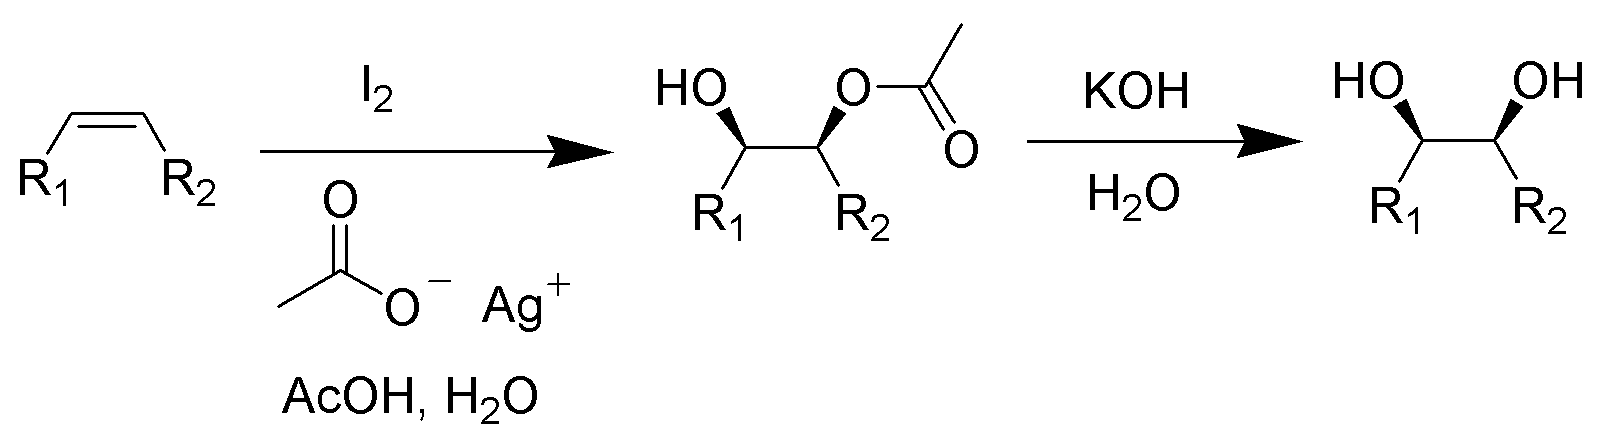 Difference Between Woodward and Prevost Reaction